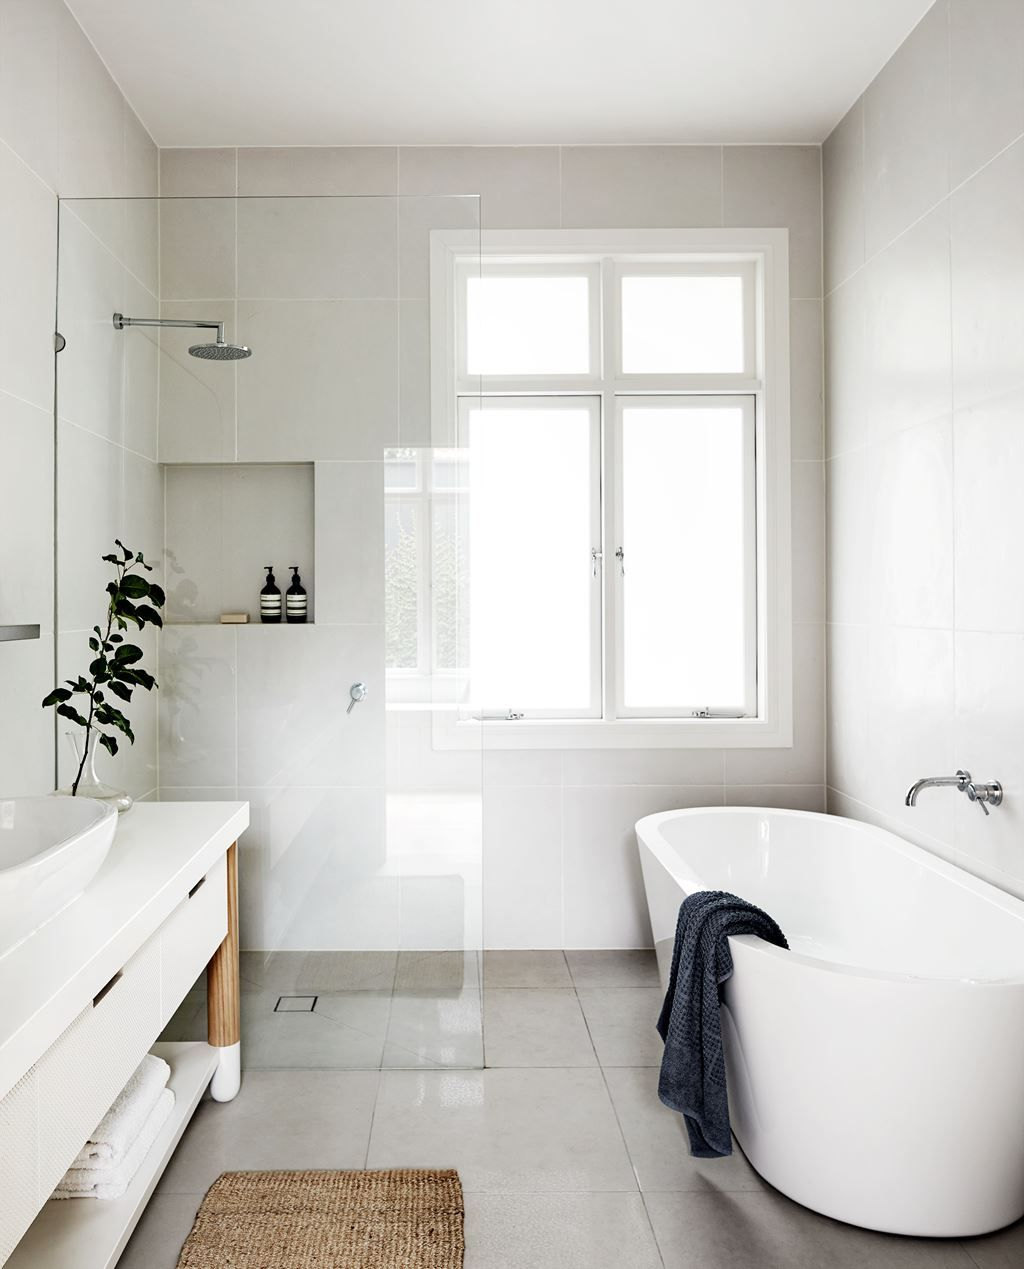 Bathroom modern this method to clean bathroom tiles is 100 times more - Bathroom Bed 3 Shower And Free Standing Bath Preferred If Space Permits Along With Double Vanity Would Like A Nook In The Shower Wall Like This One As